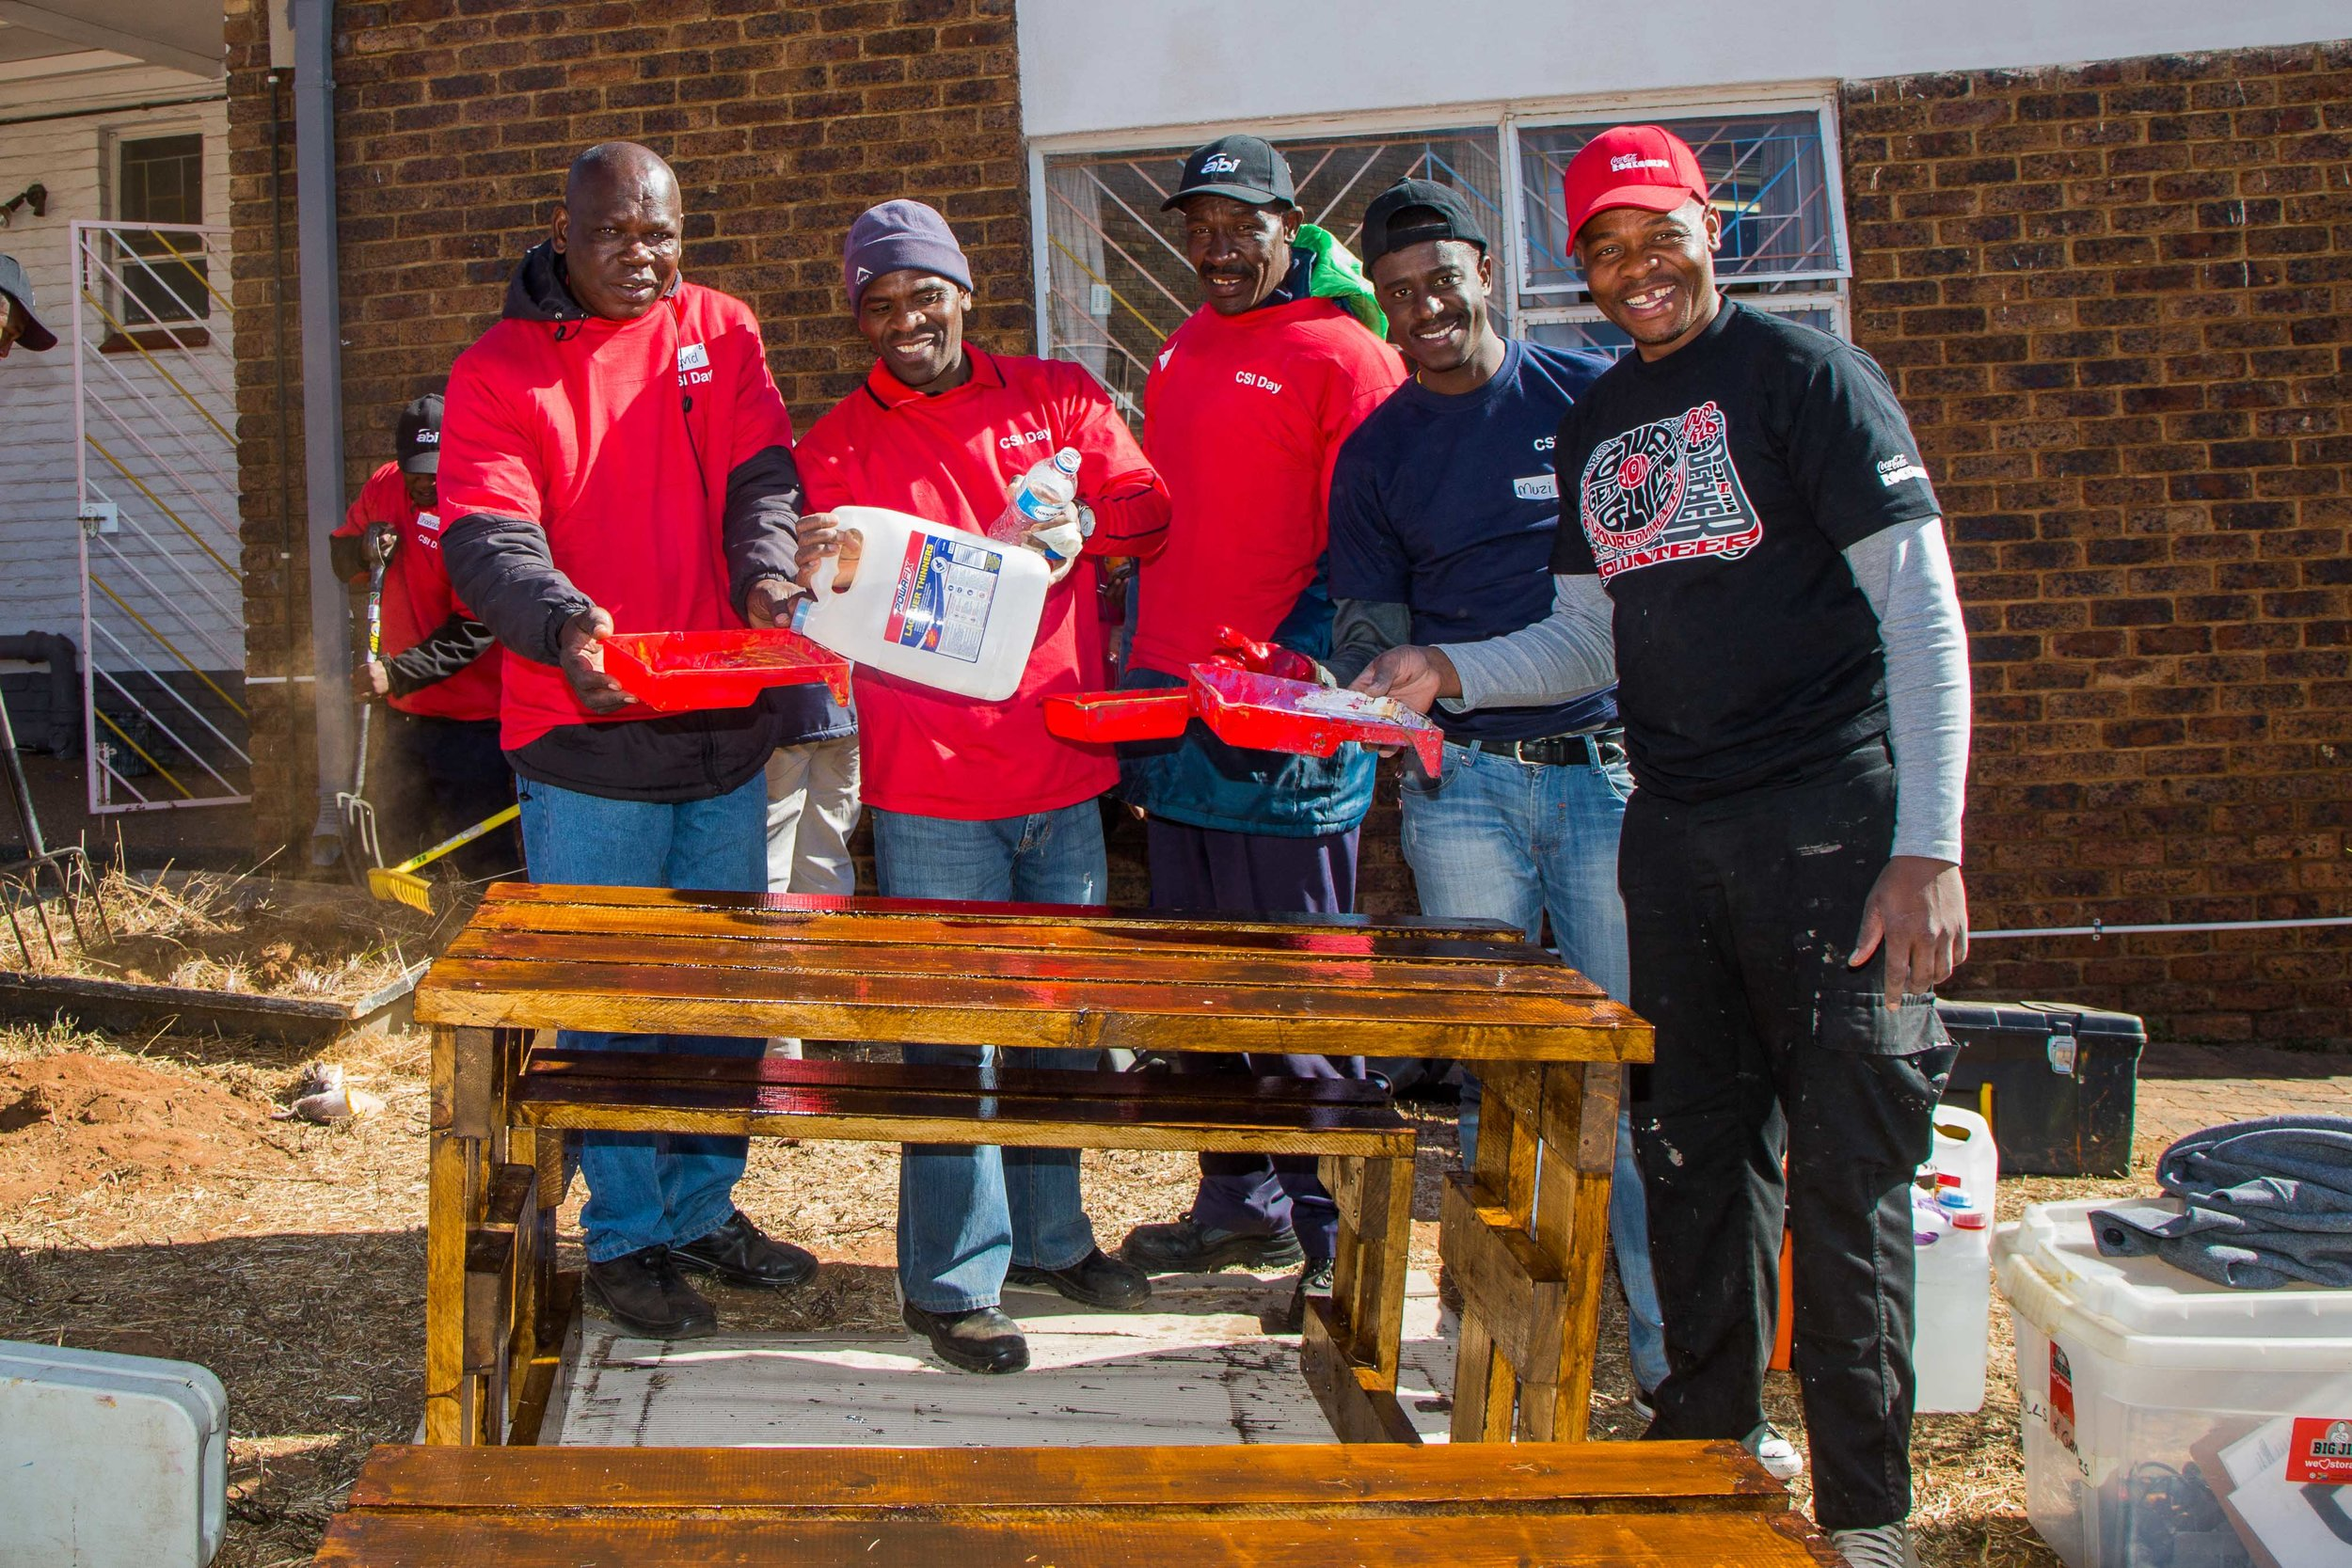 20150617_ABI Laudium Child Welfare_0129.jpg